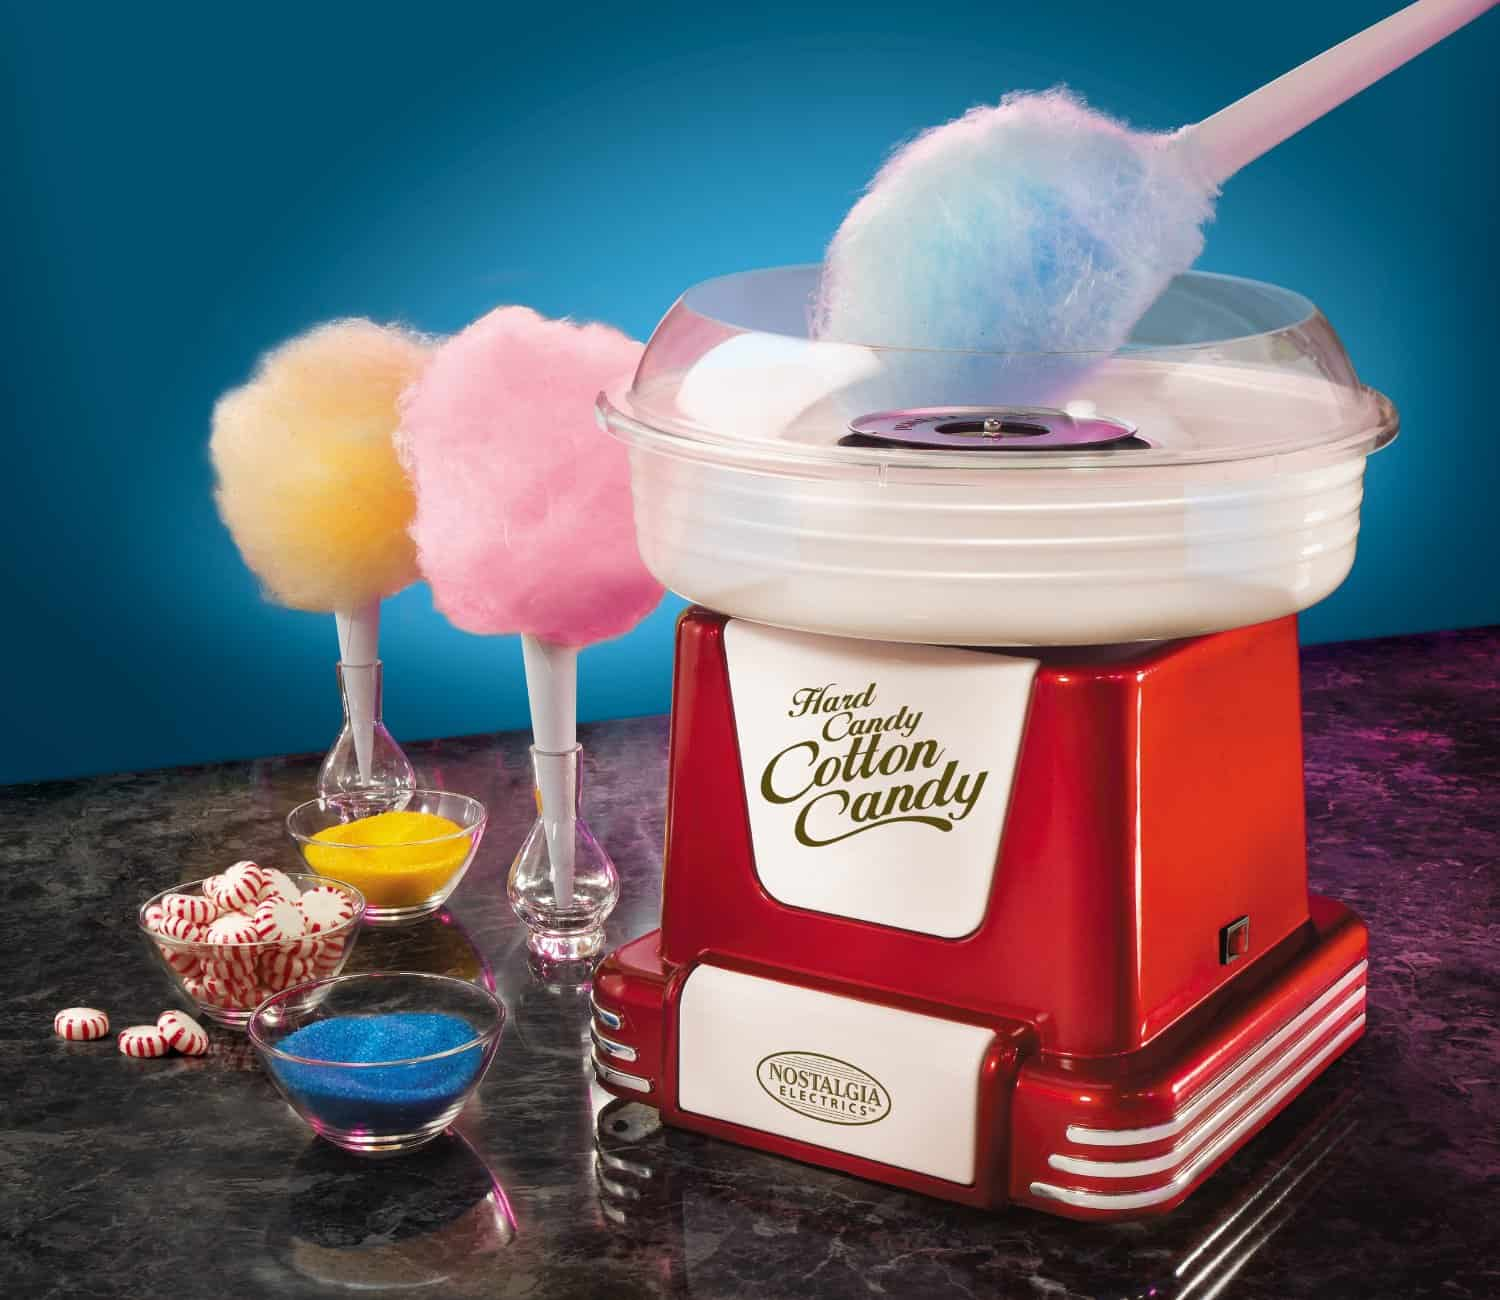 Turn your favorite hard candy to your favorite cotton candy!